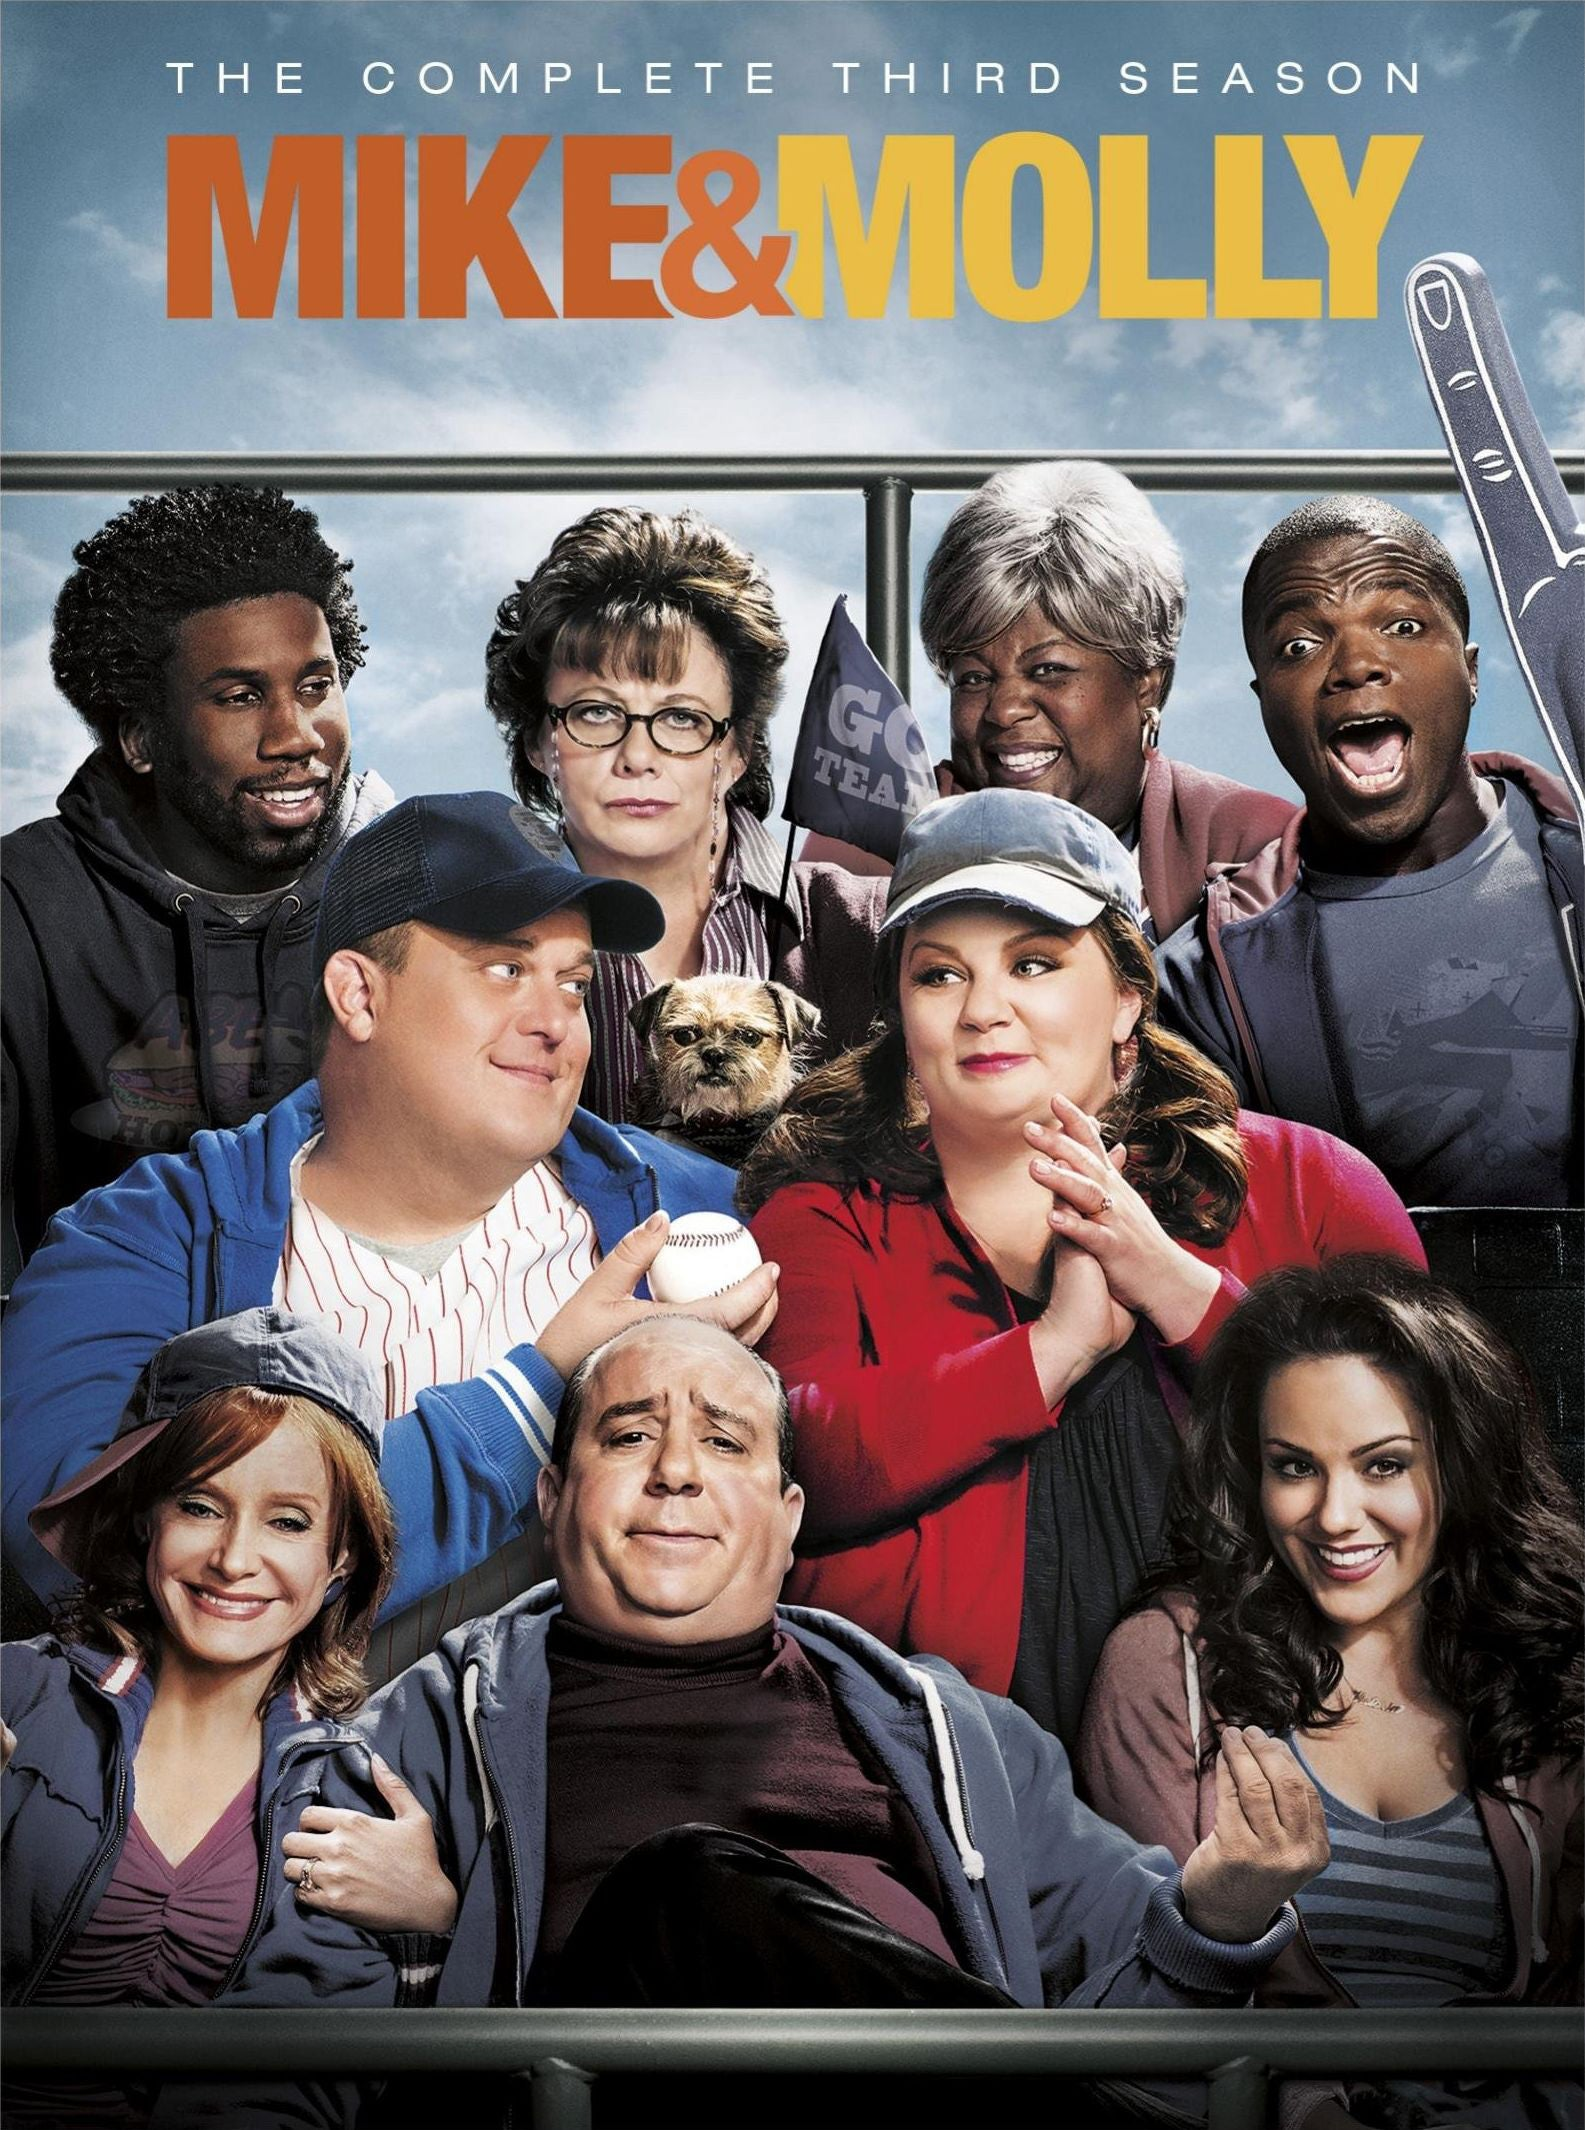 Mike & Molly: The Complete Third Season (DVD)